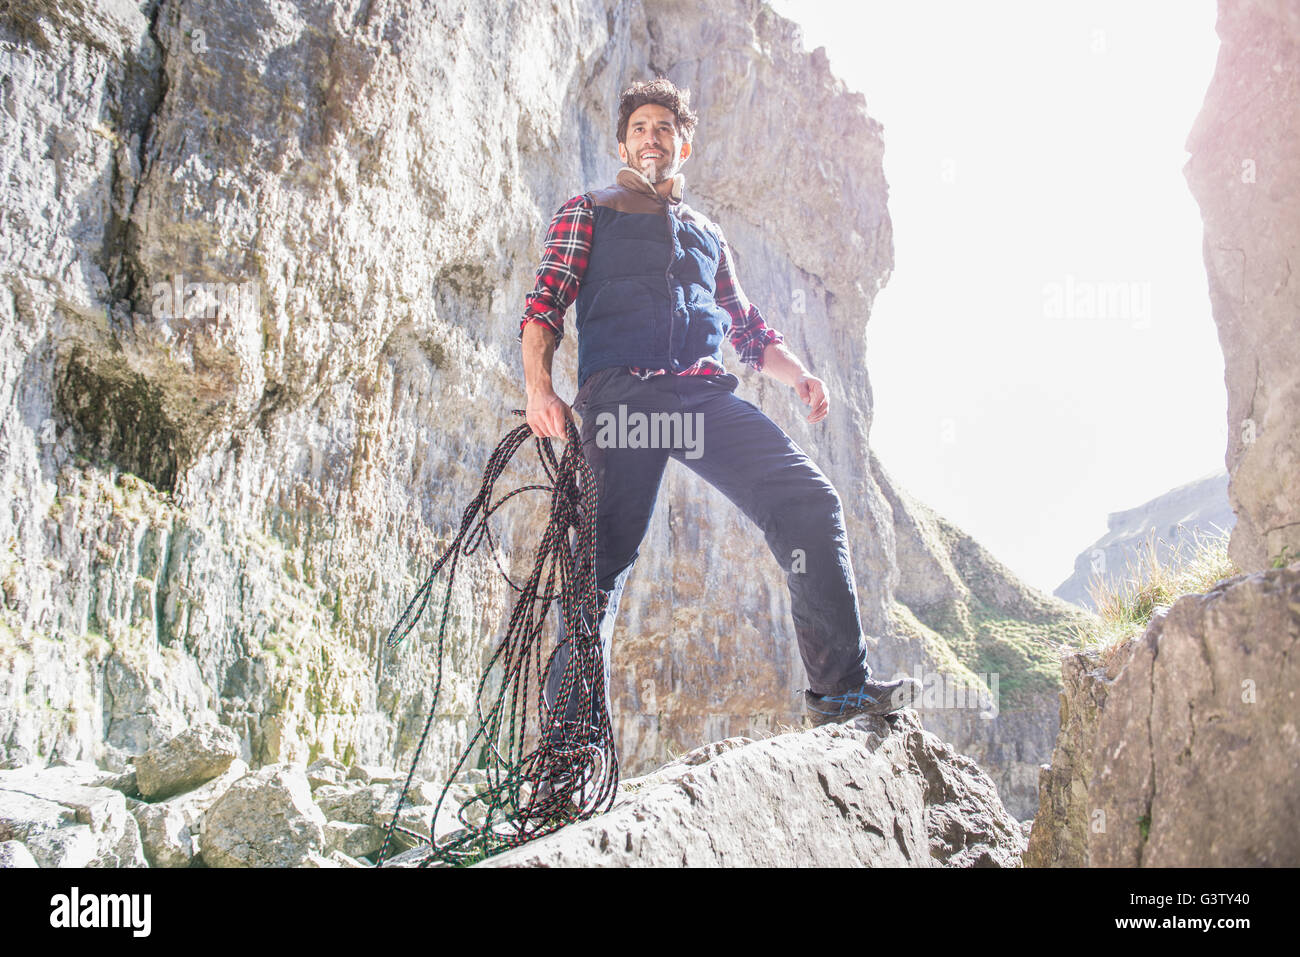 A mountaineer standing with a rope in rugged terrain. - Stock Image